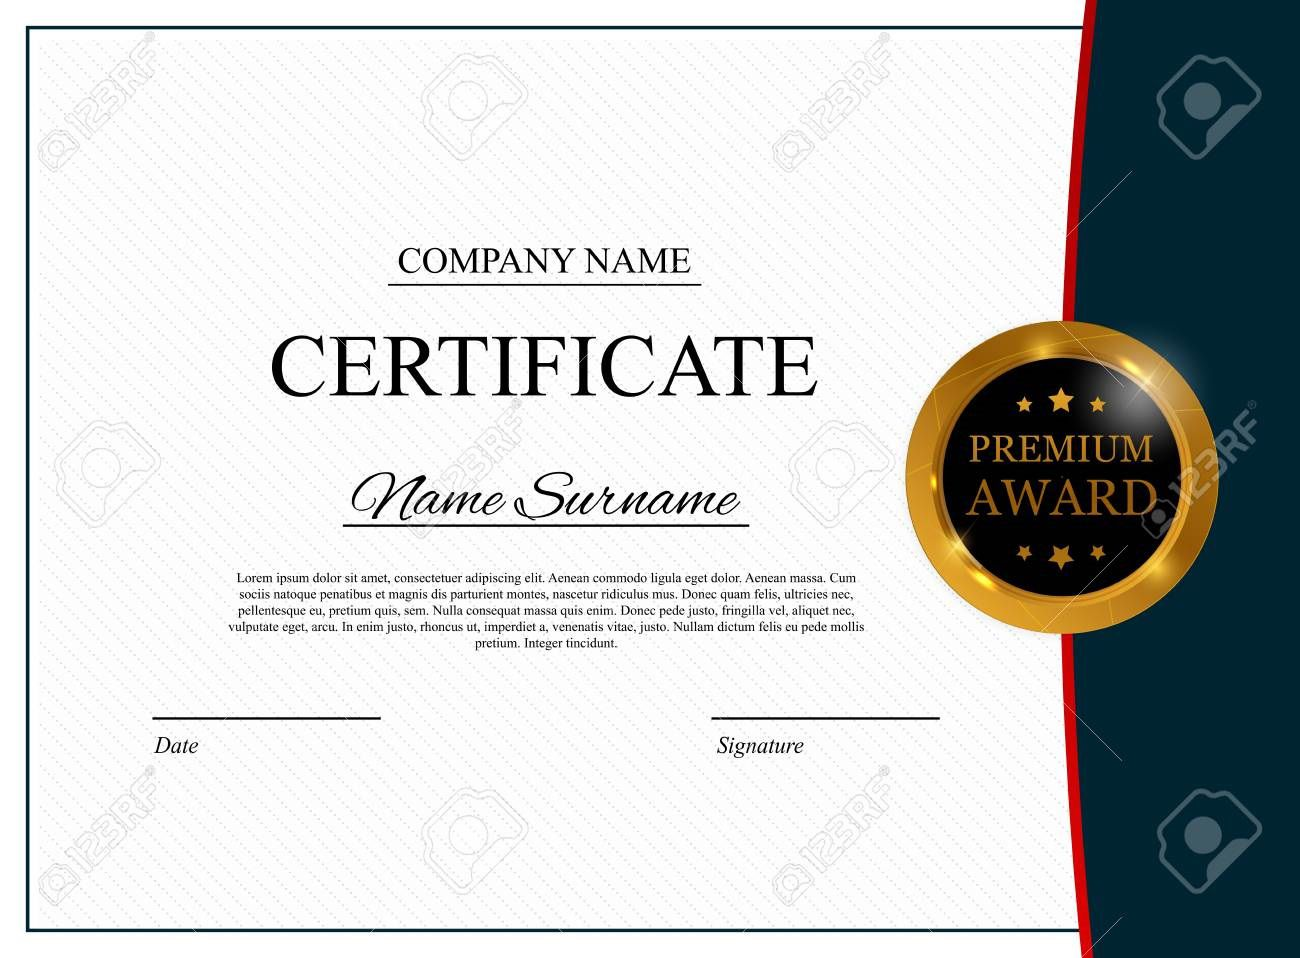 004 Exceptional Blank Award Certificate Template High Definition  Printable Math Editable FreeFull